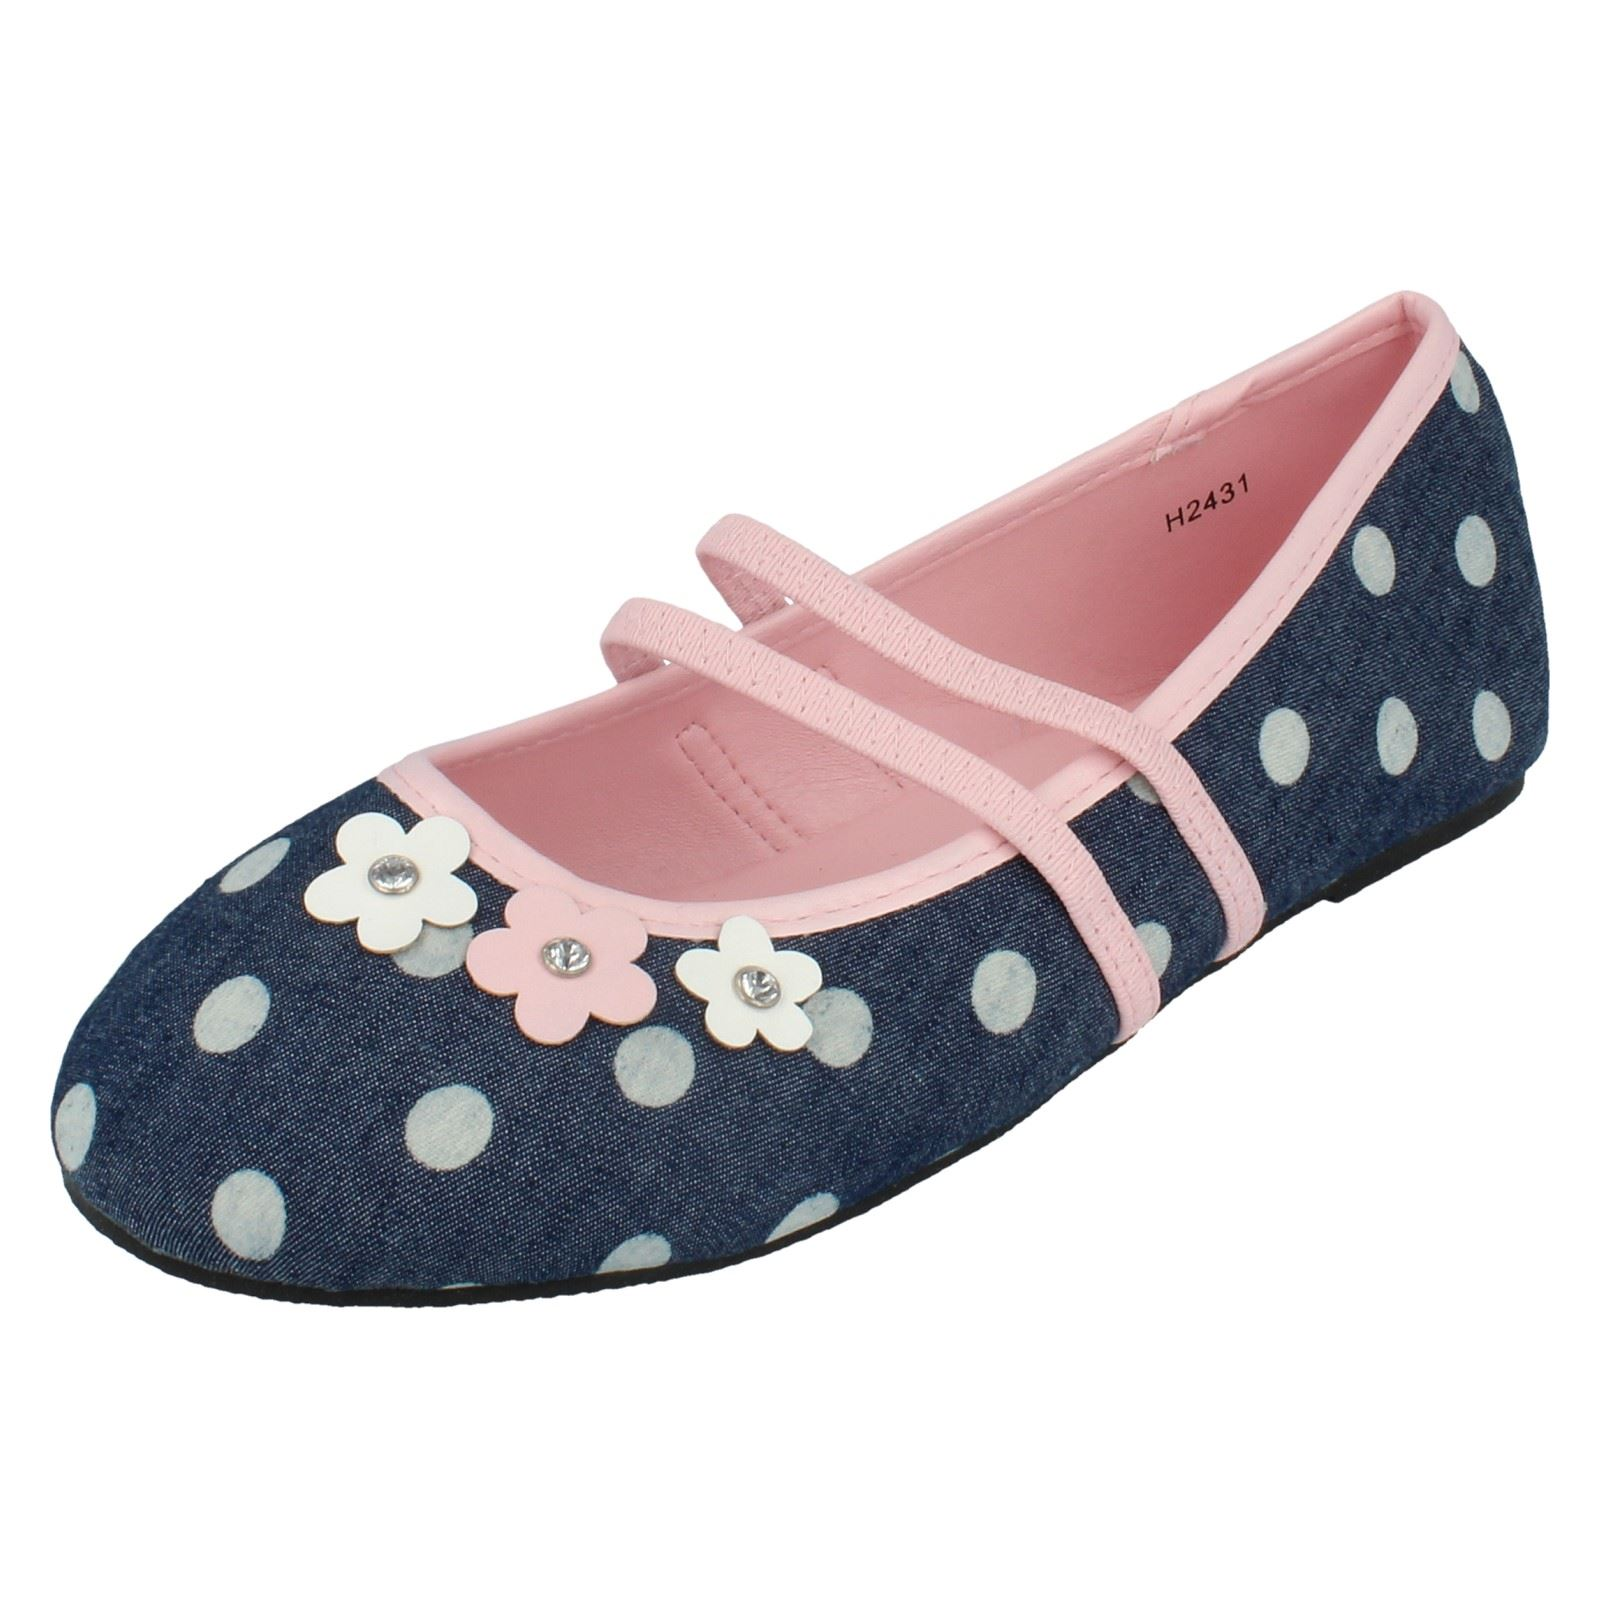 Girls Spot On Flat Dolly Shoes Style - H2431 - D